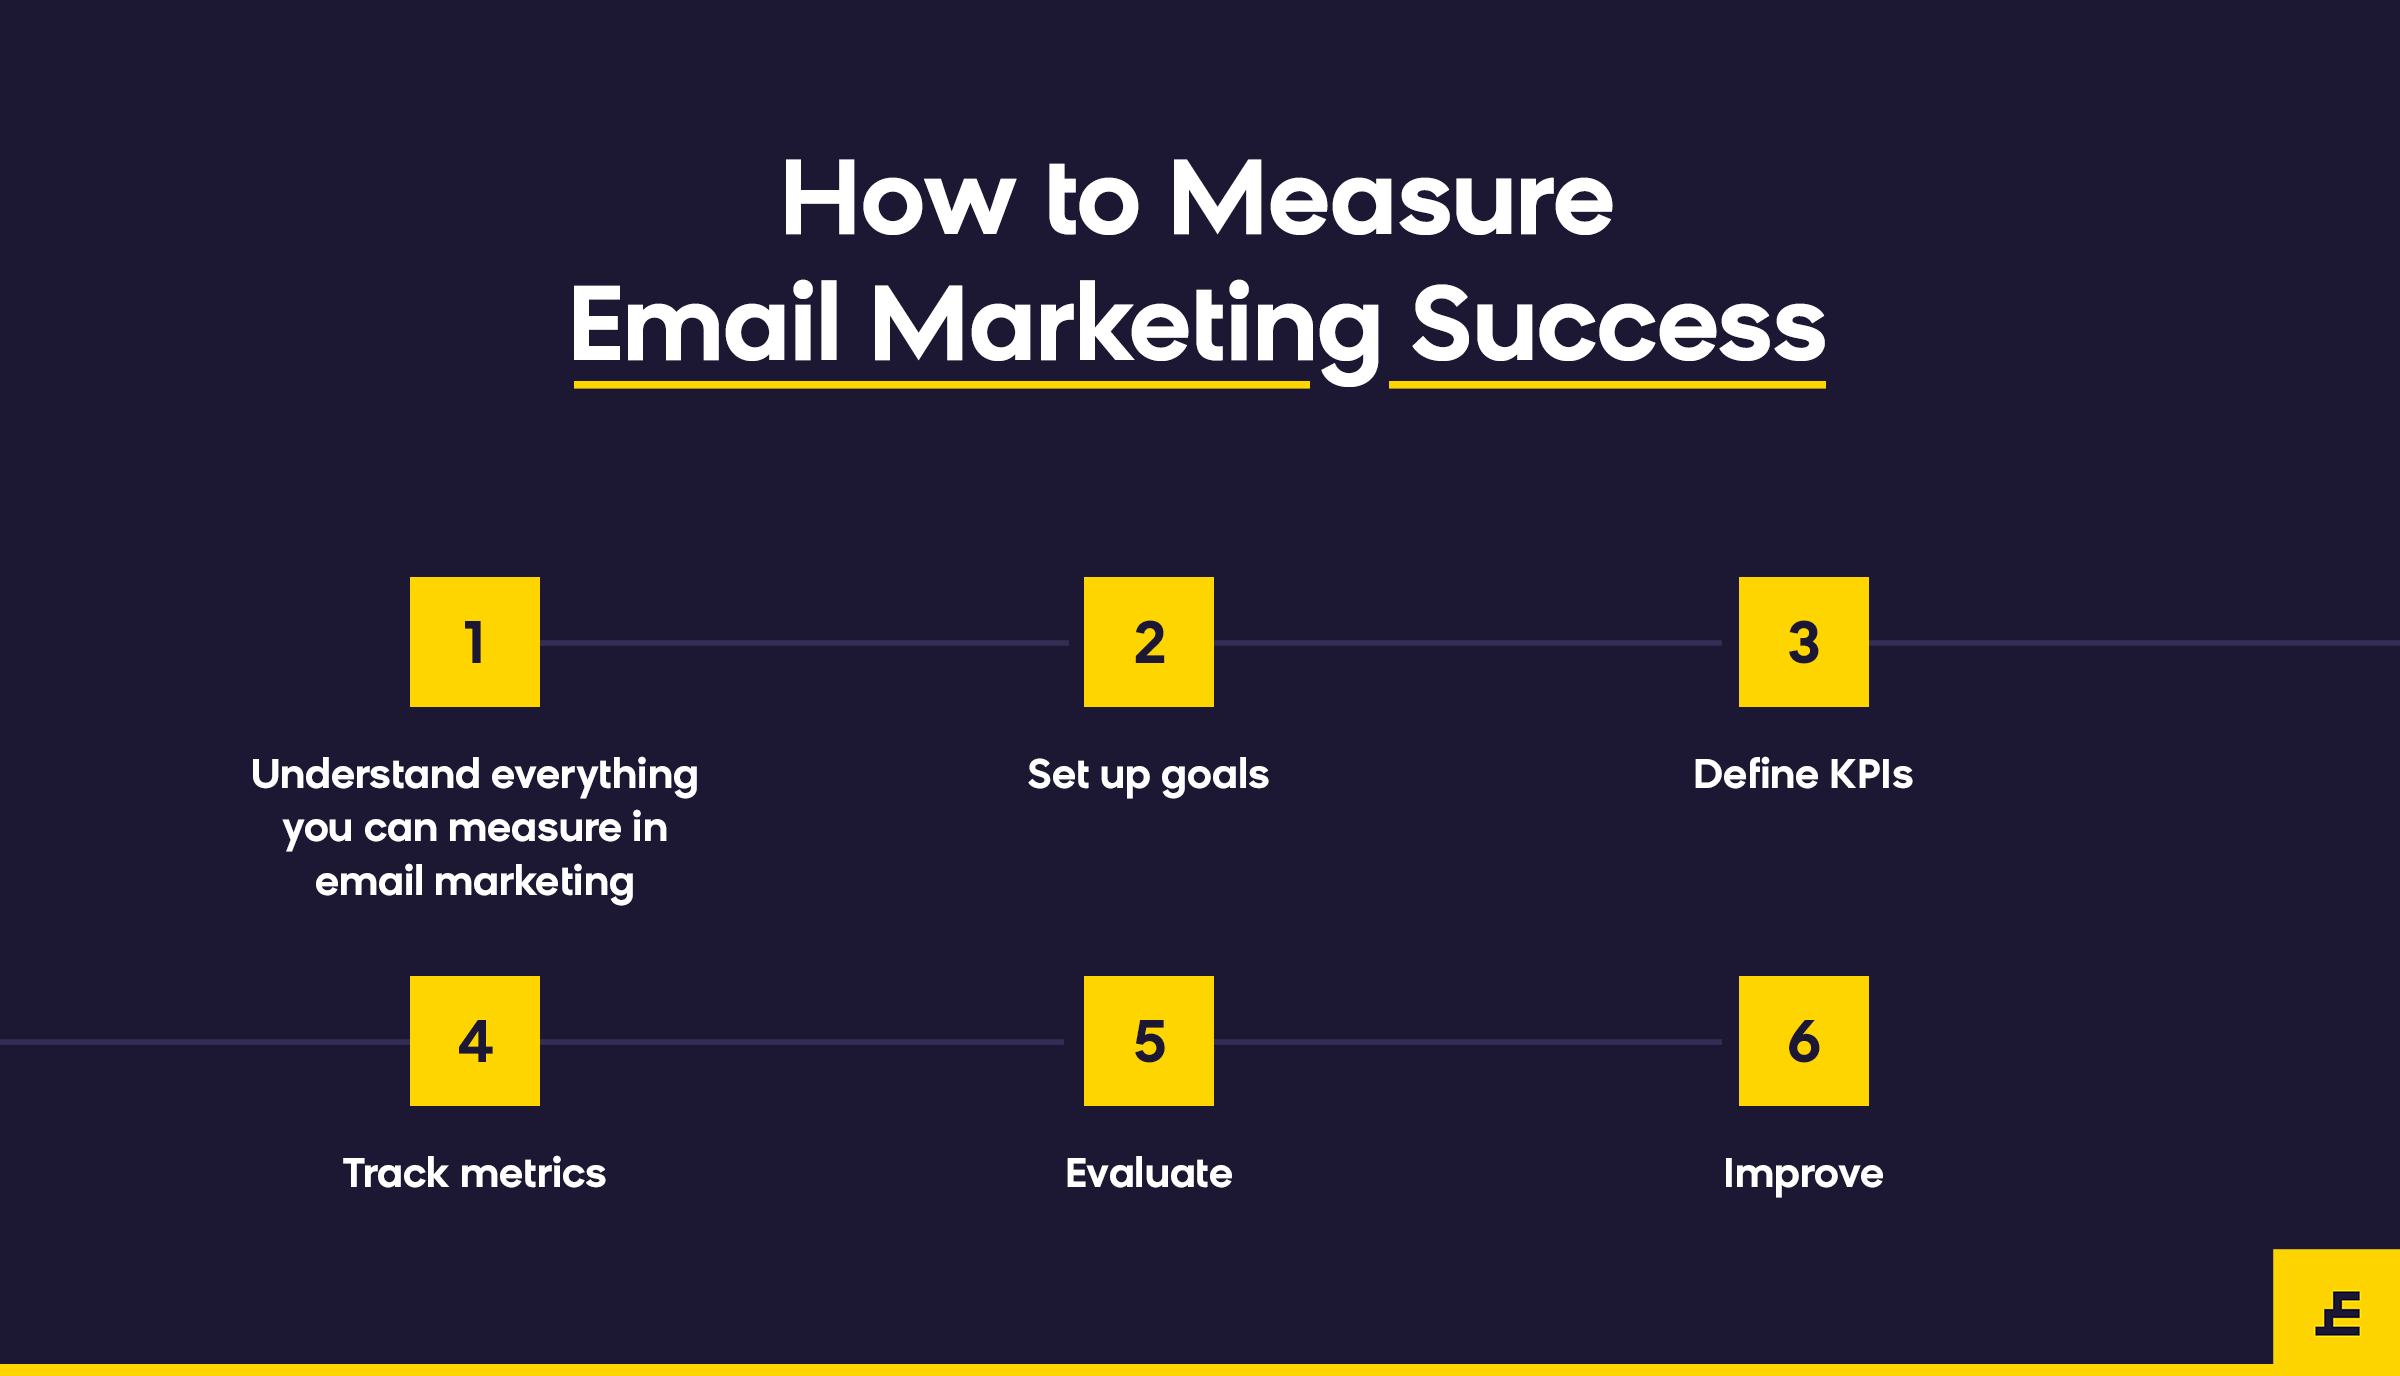 How to measure email marketing